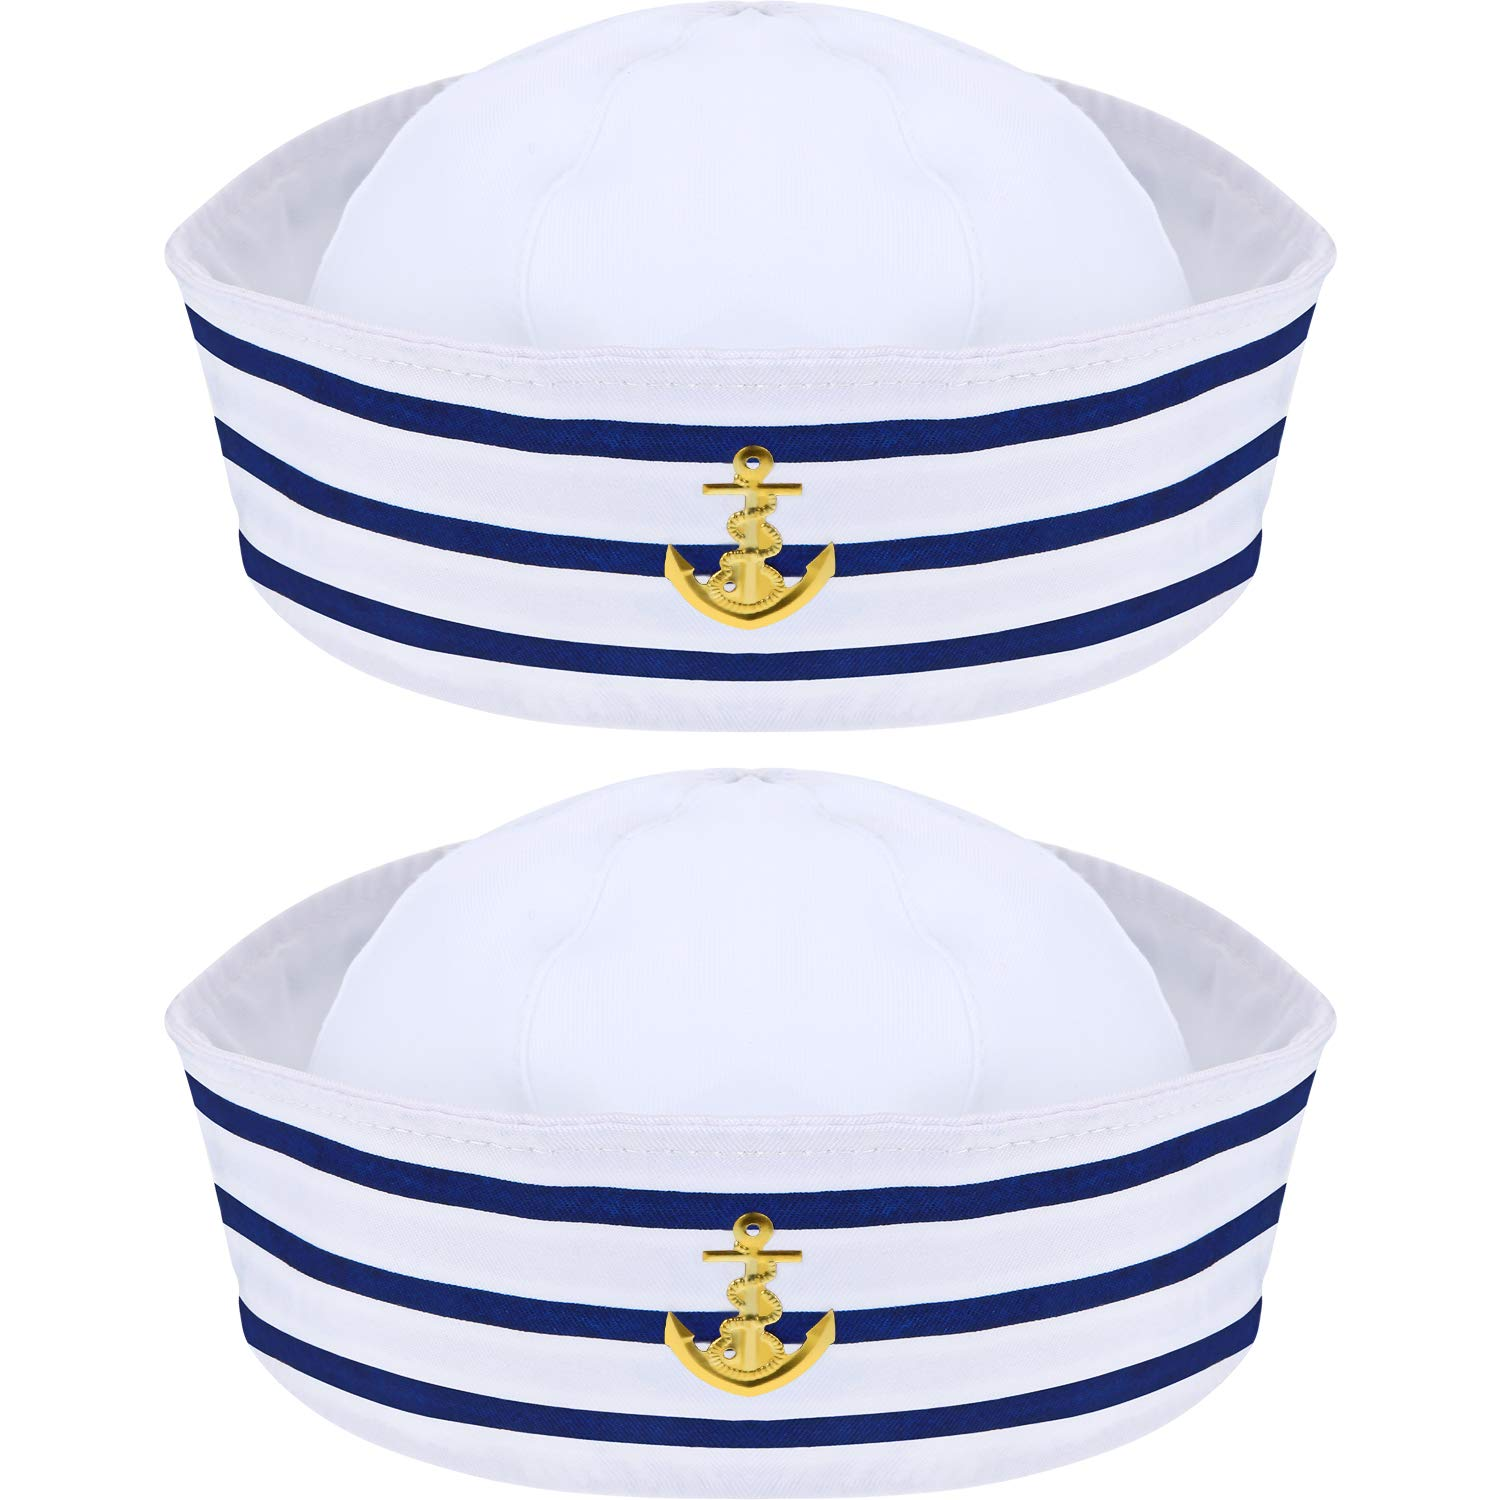 2 Packs Sailor Hat Captain's Hat Blue with White Sailor Hat for Costume Accessory